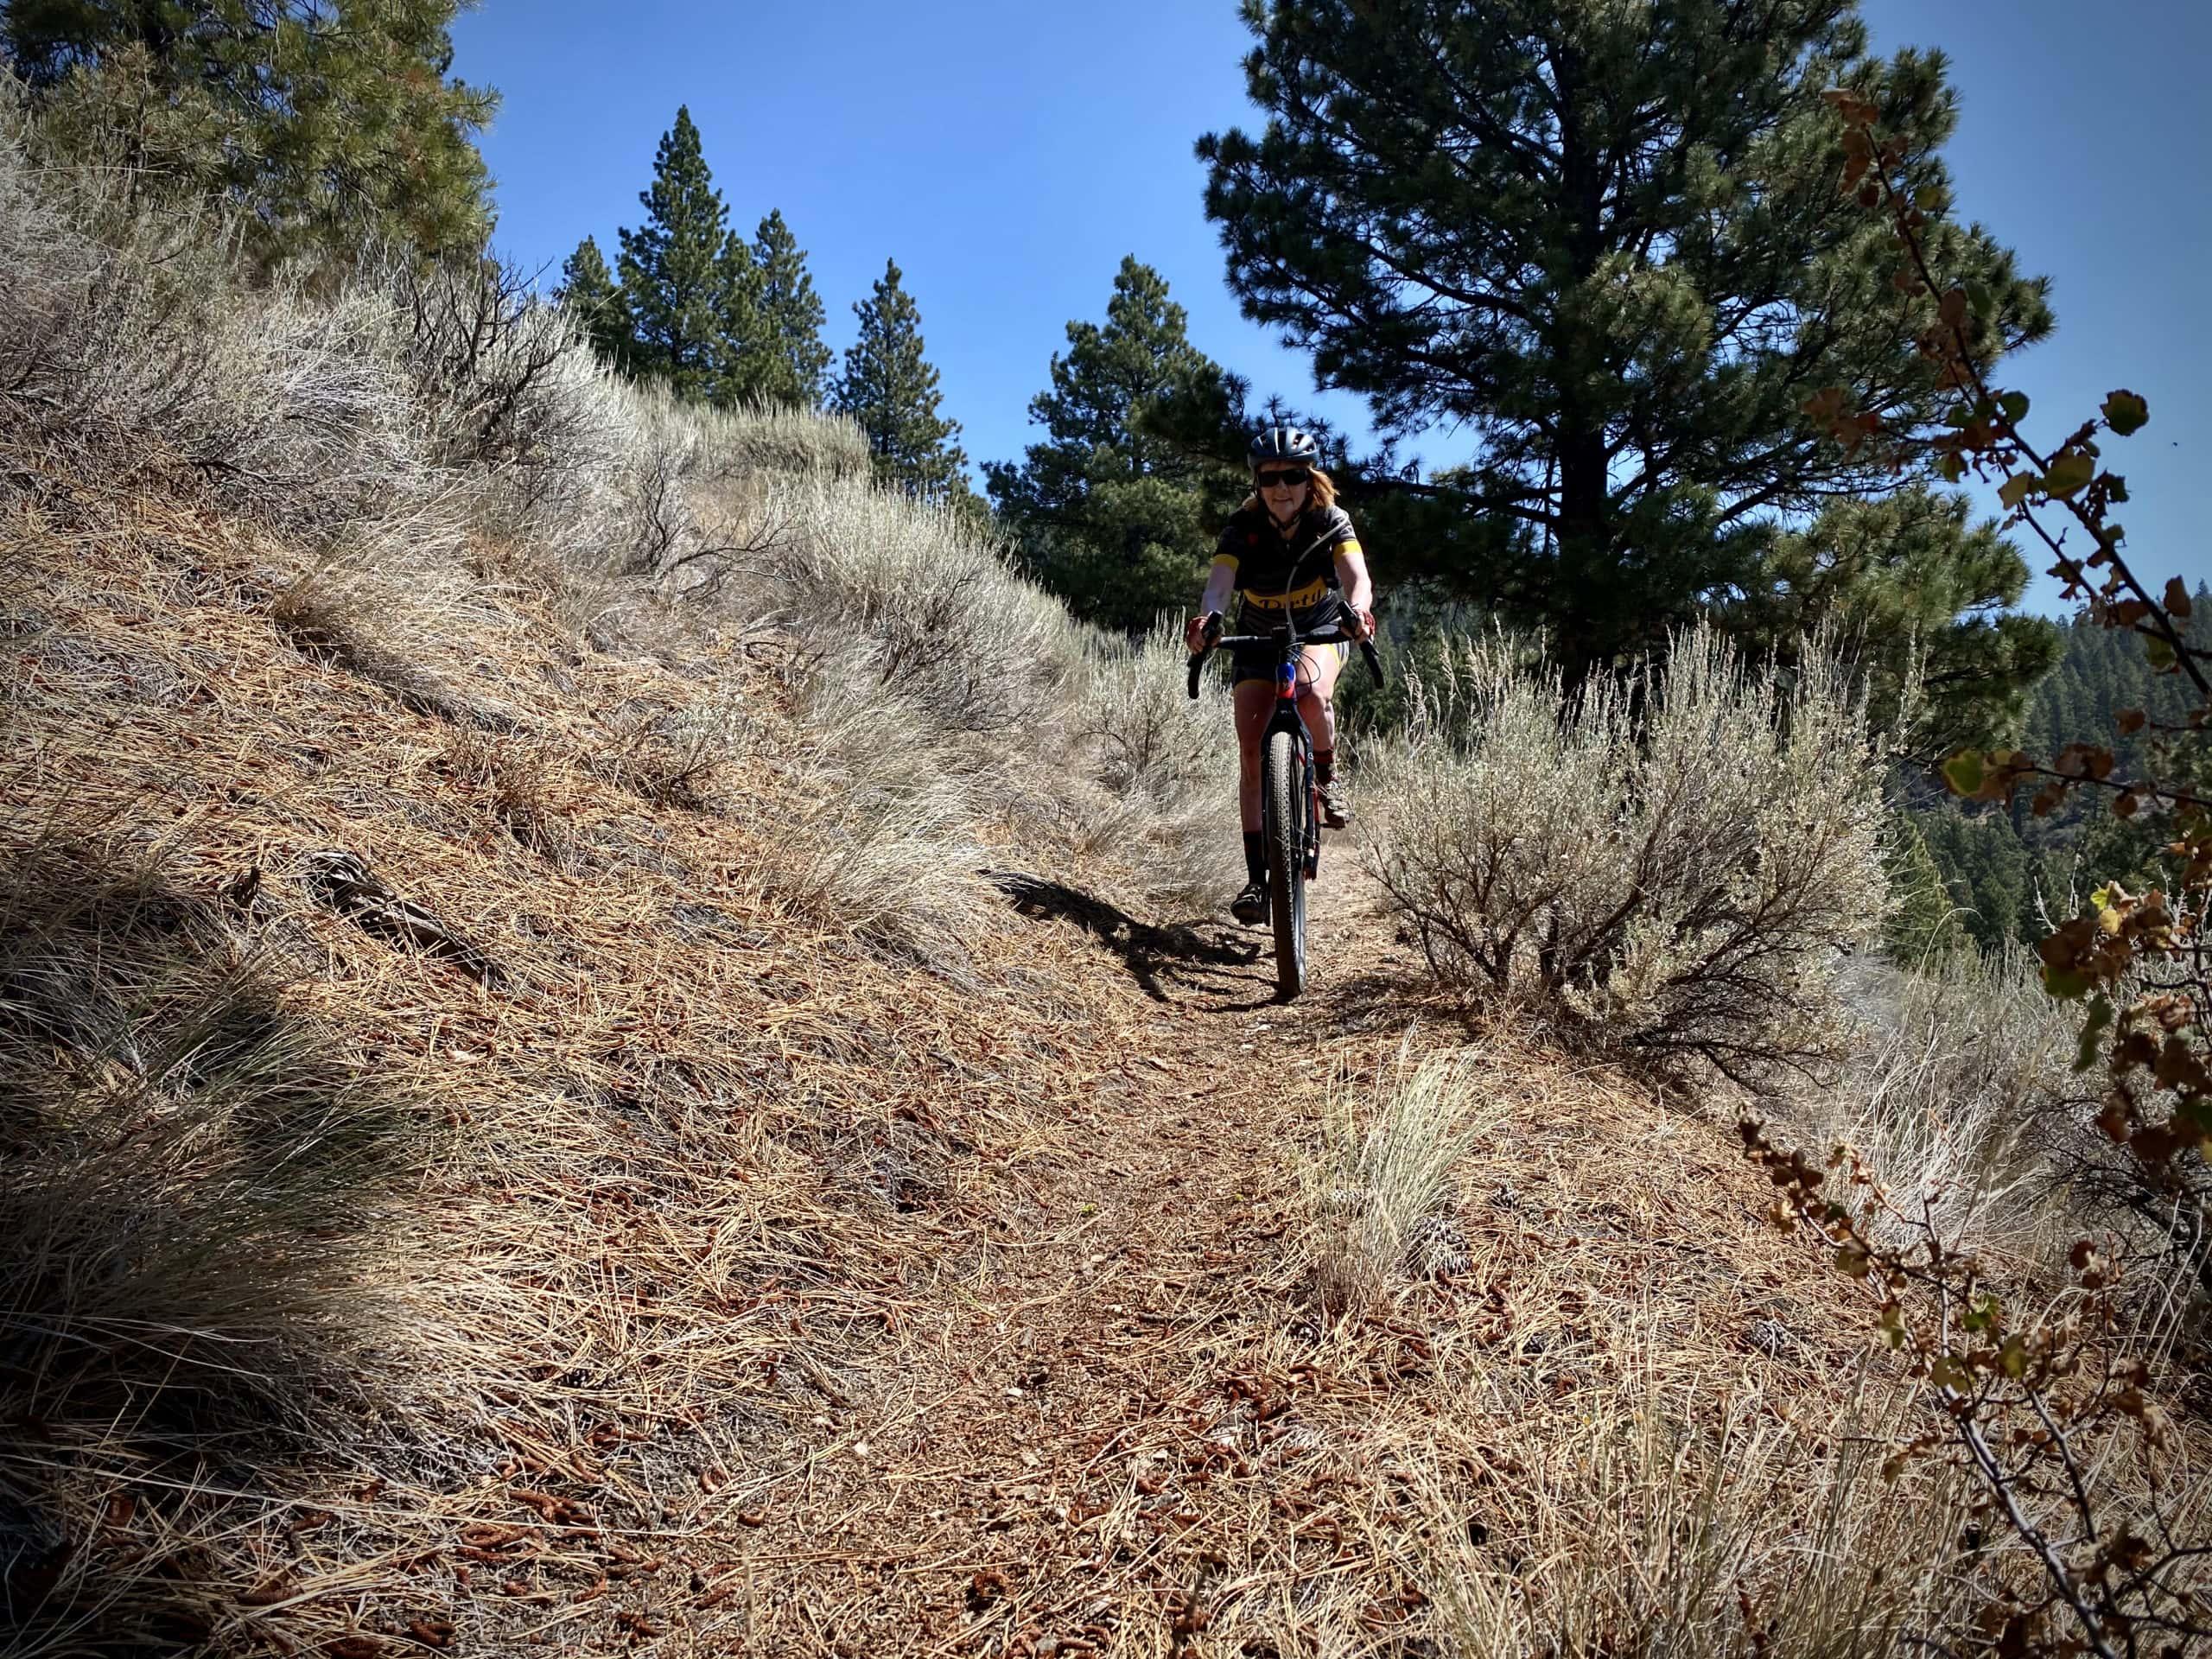 Gravel cyclist on single track trail in the Fremont National Forest.